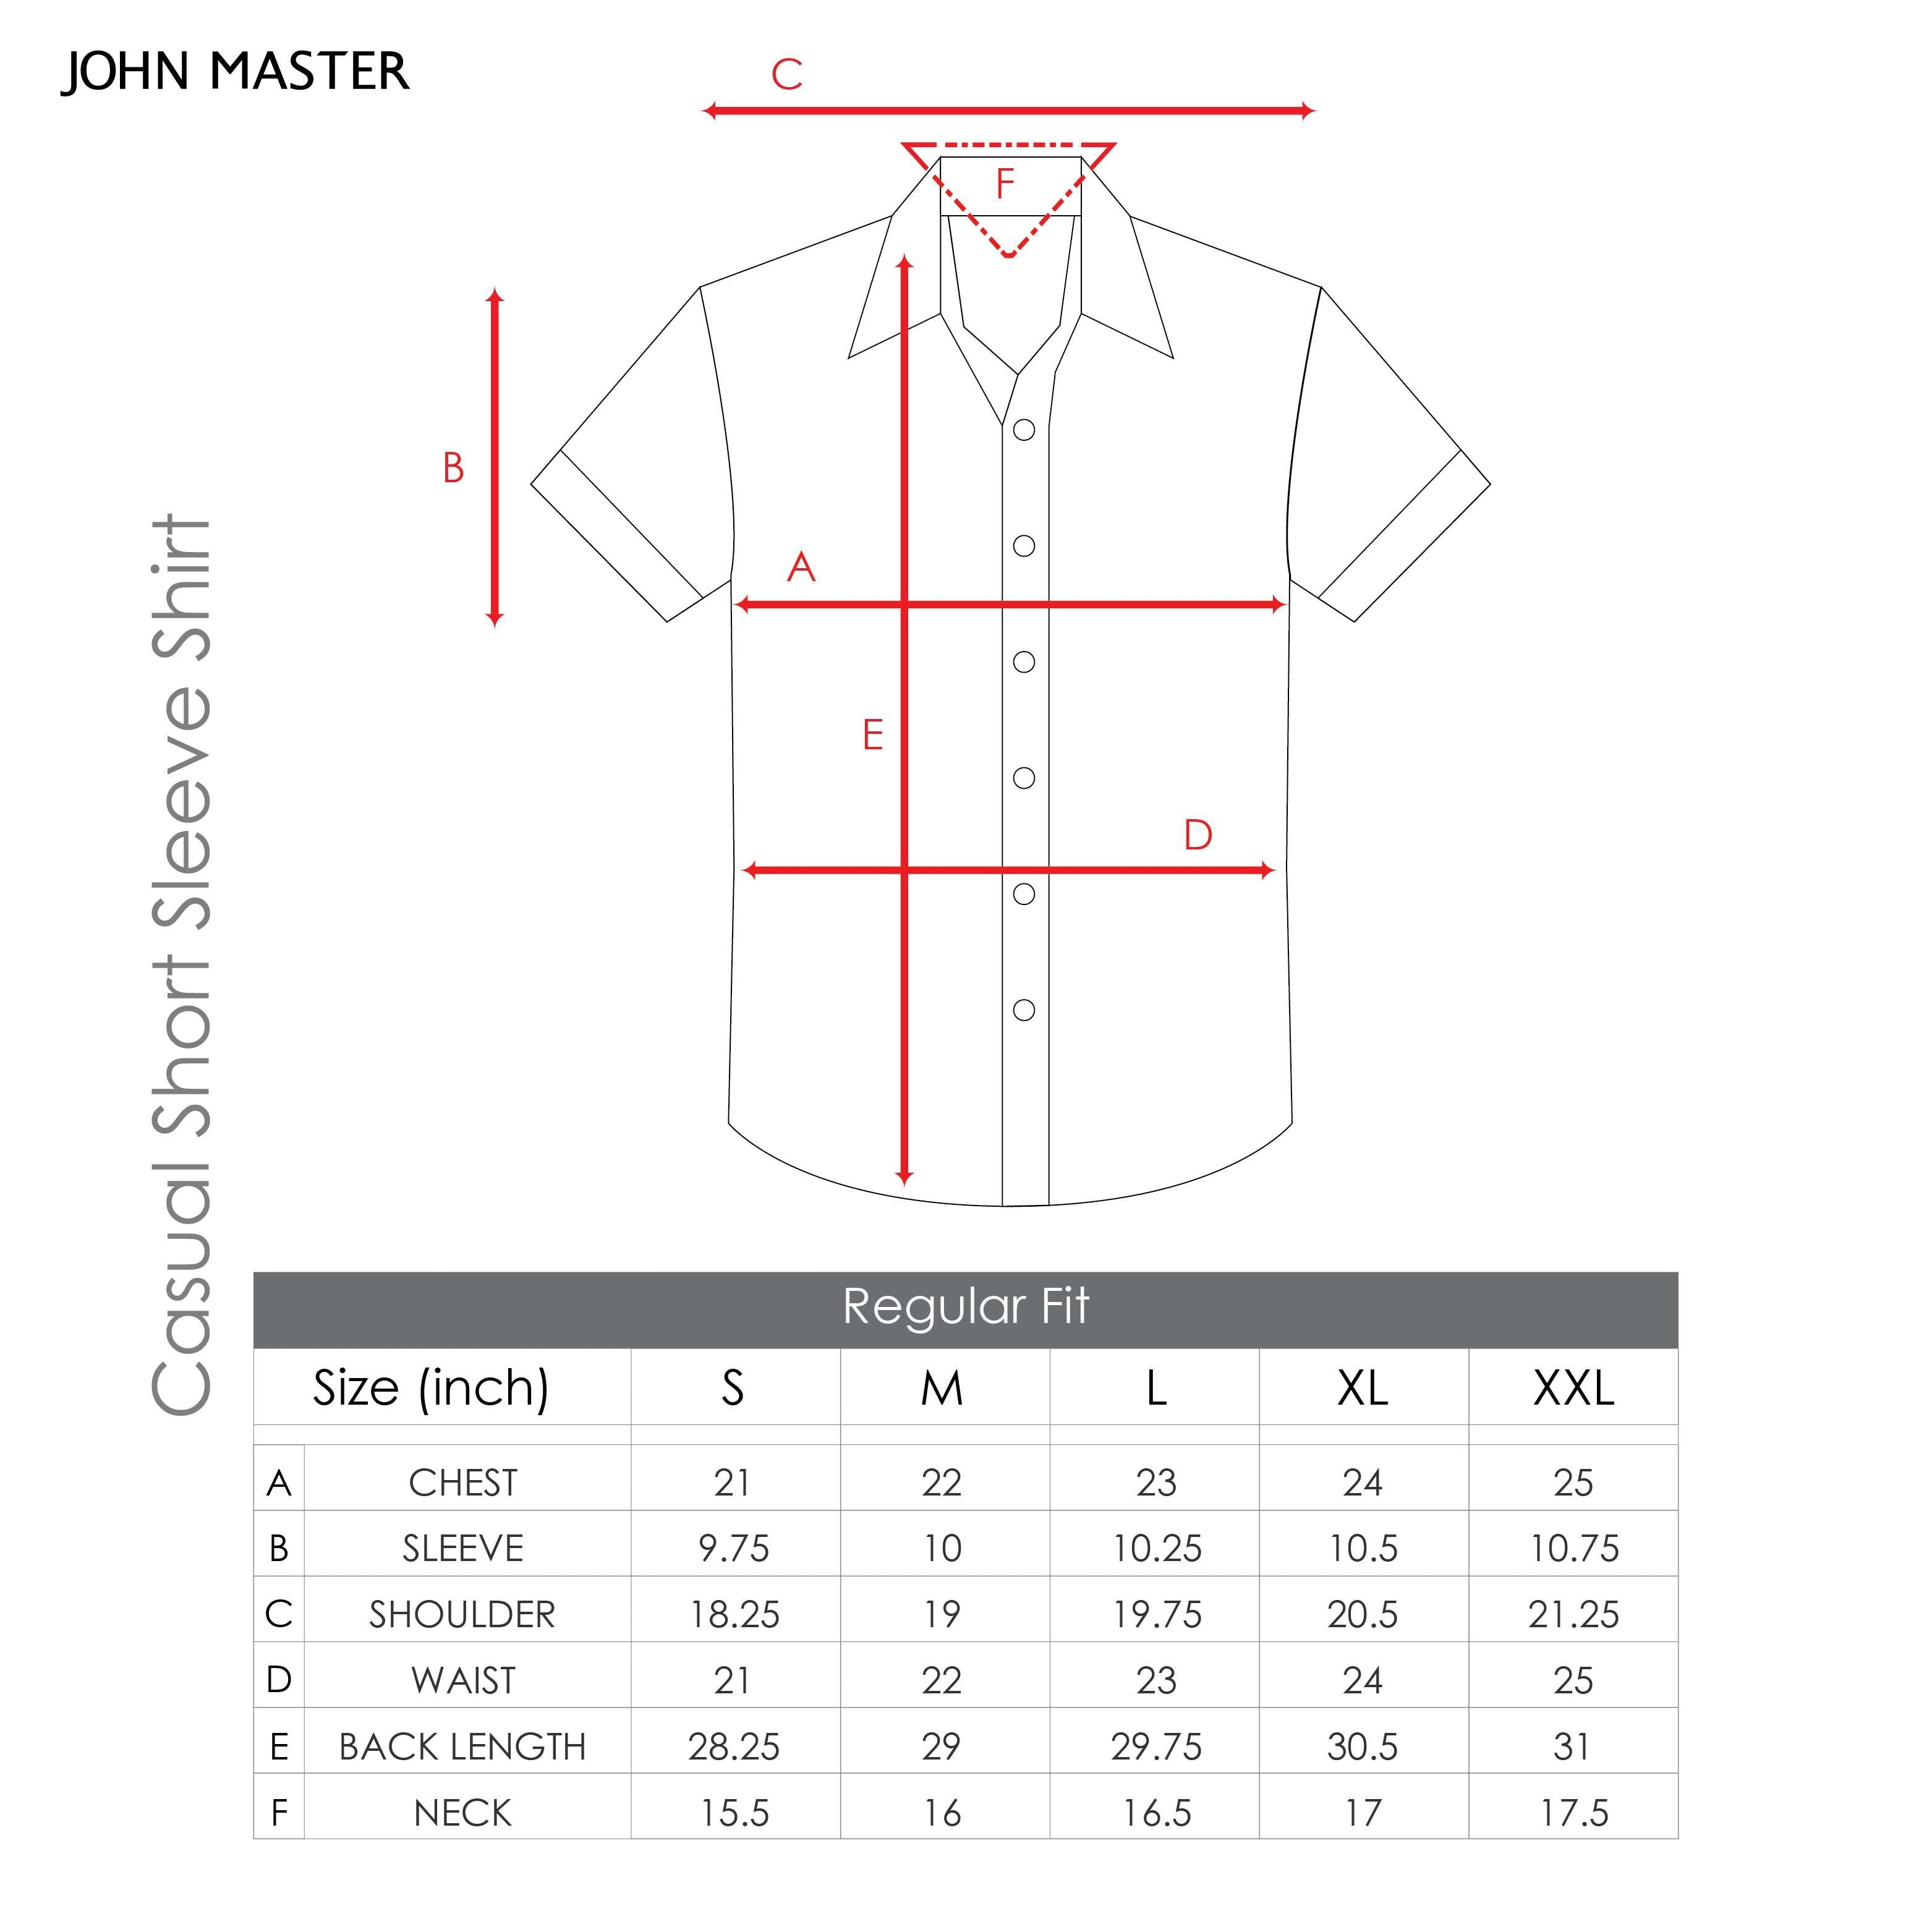 John Master Cotton Short Sleeve Shirt Regular Fit Dark Maroon 7047106 - R9 : Buy John Master online at CMG.MY